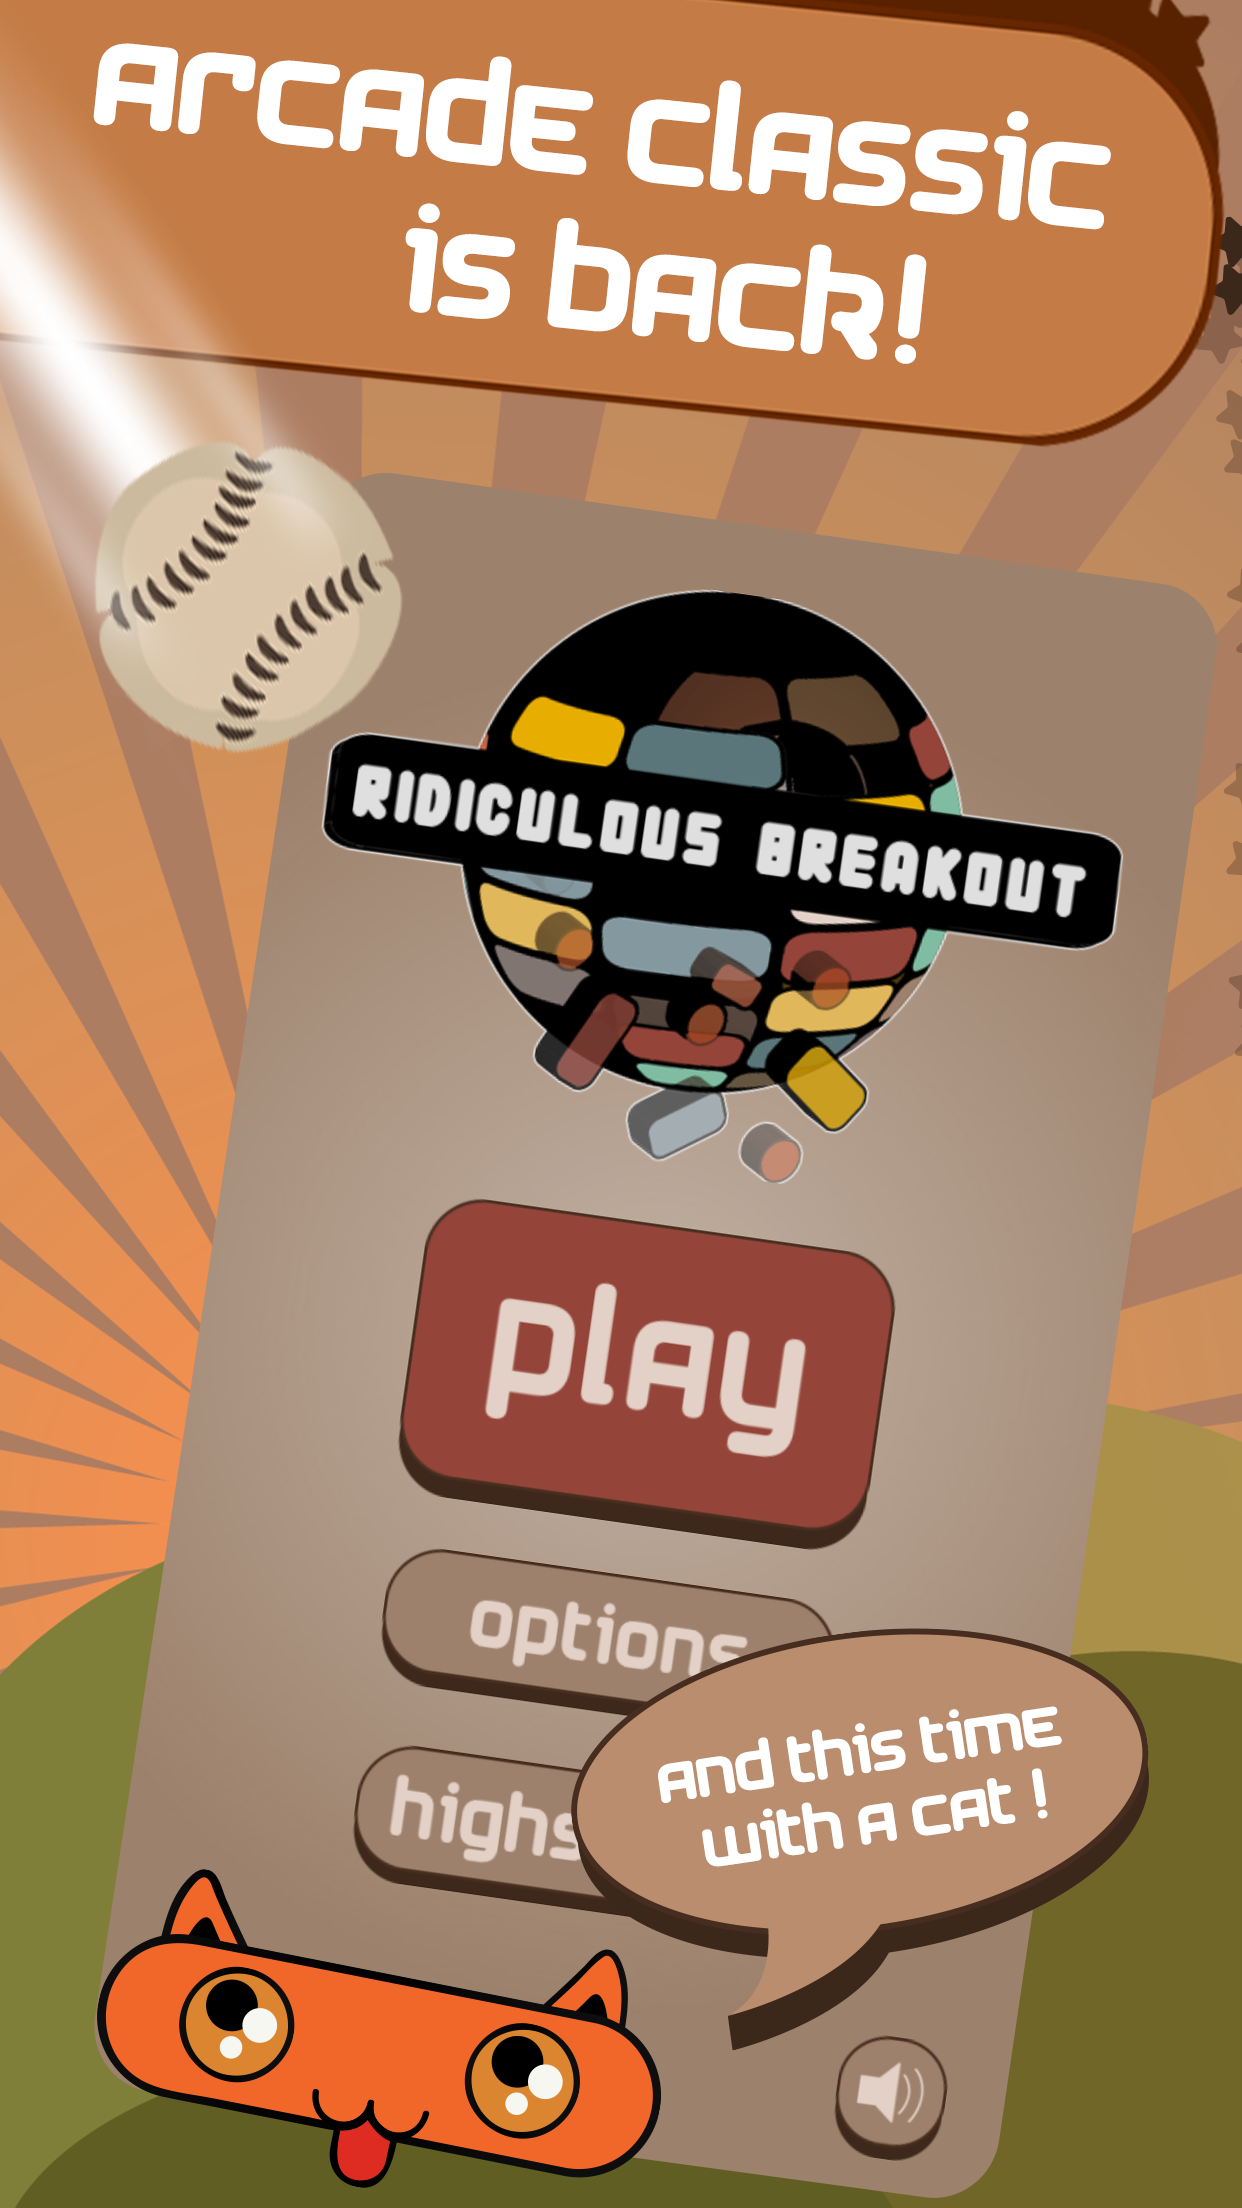 Ridiculous Breakout